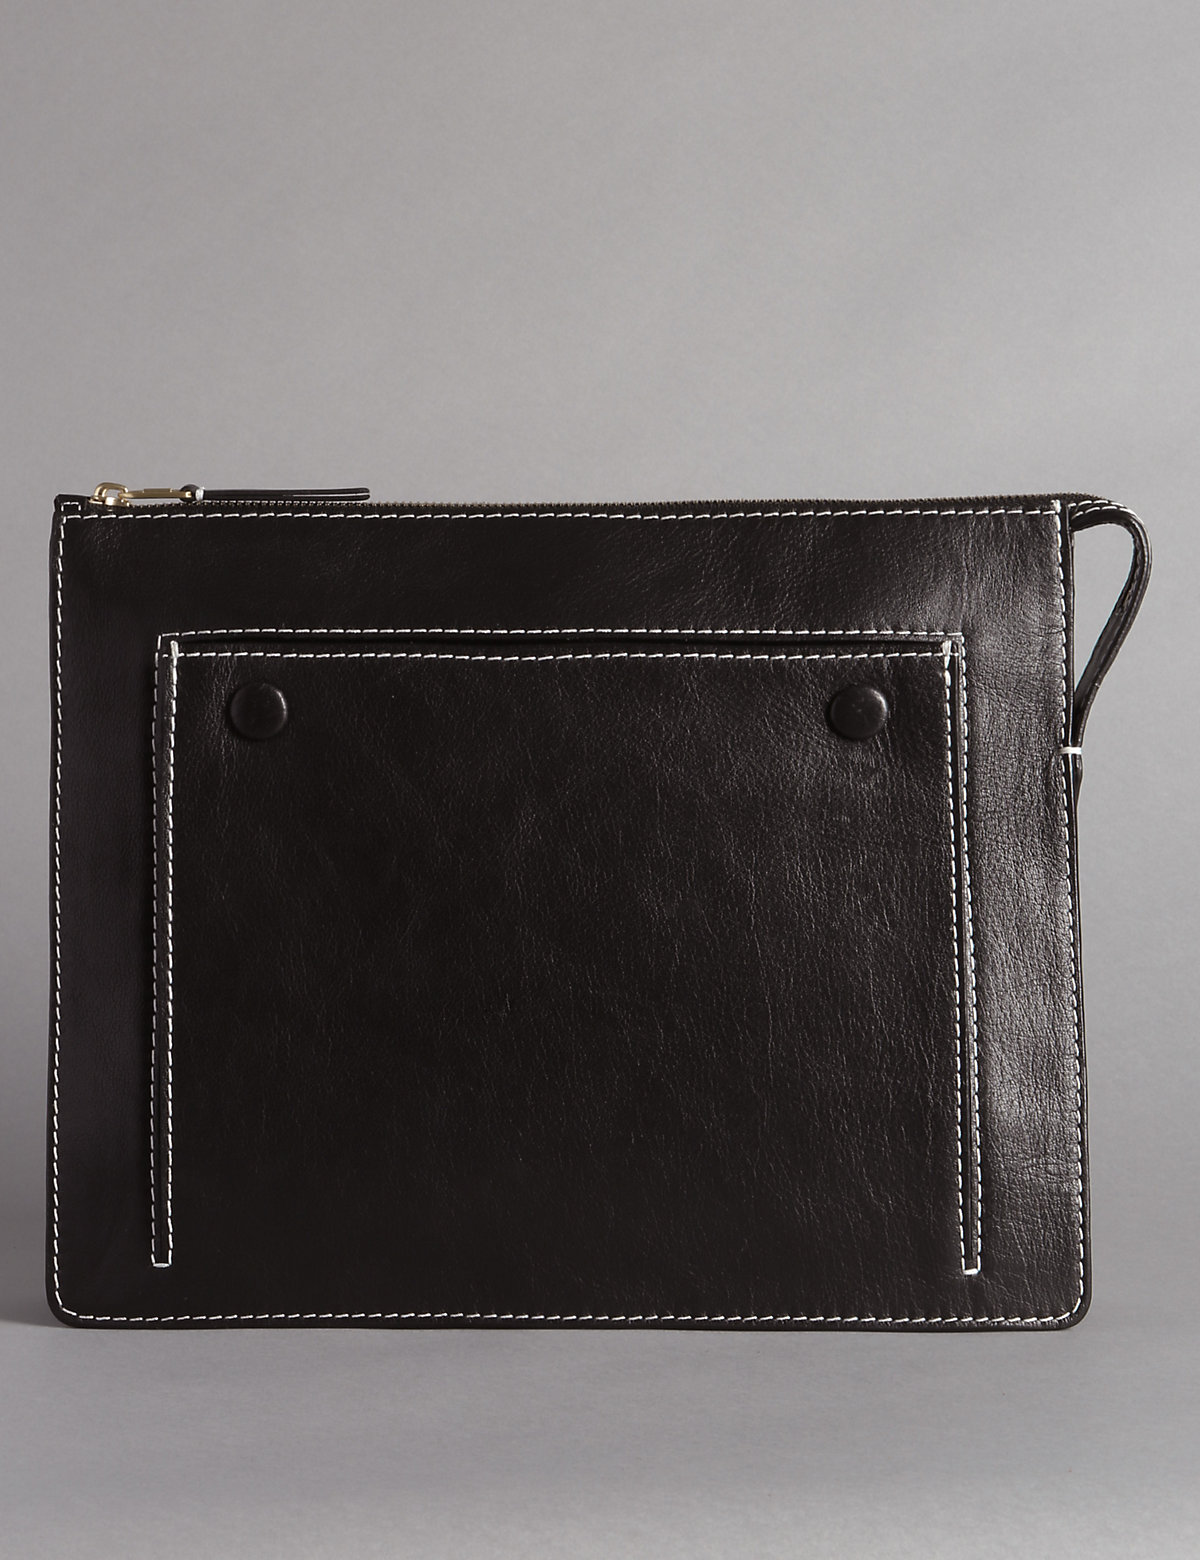 Autograph Leather Amber Attached Clutch Bag